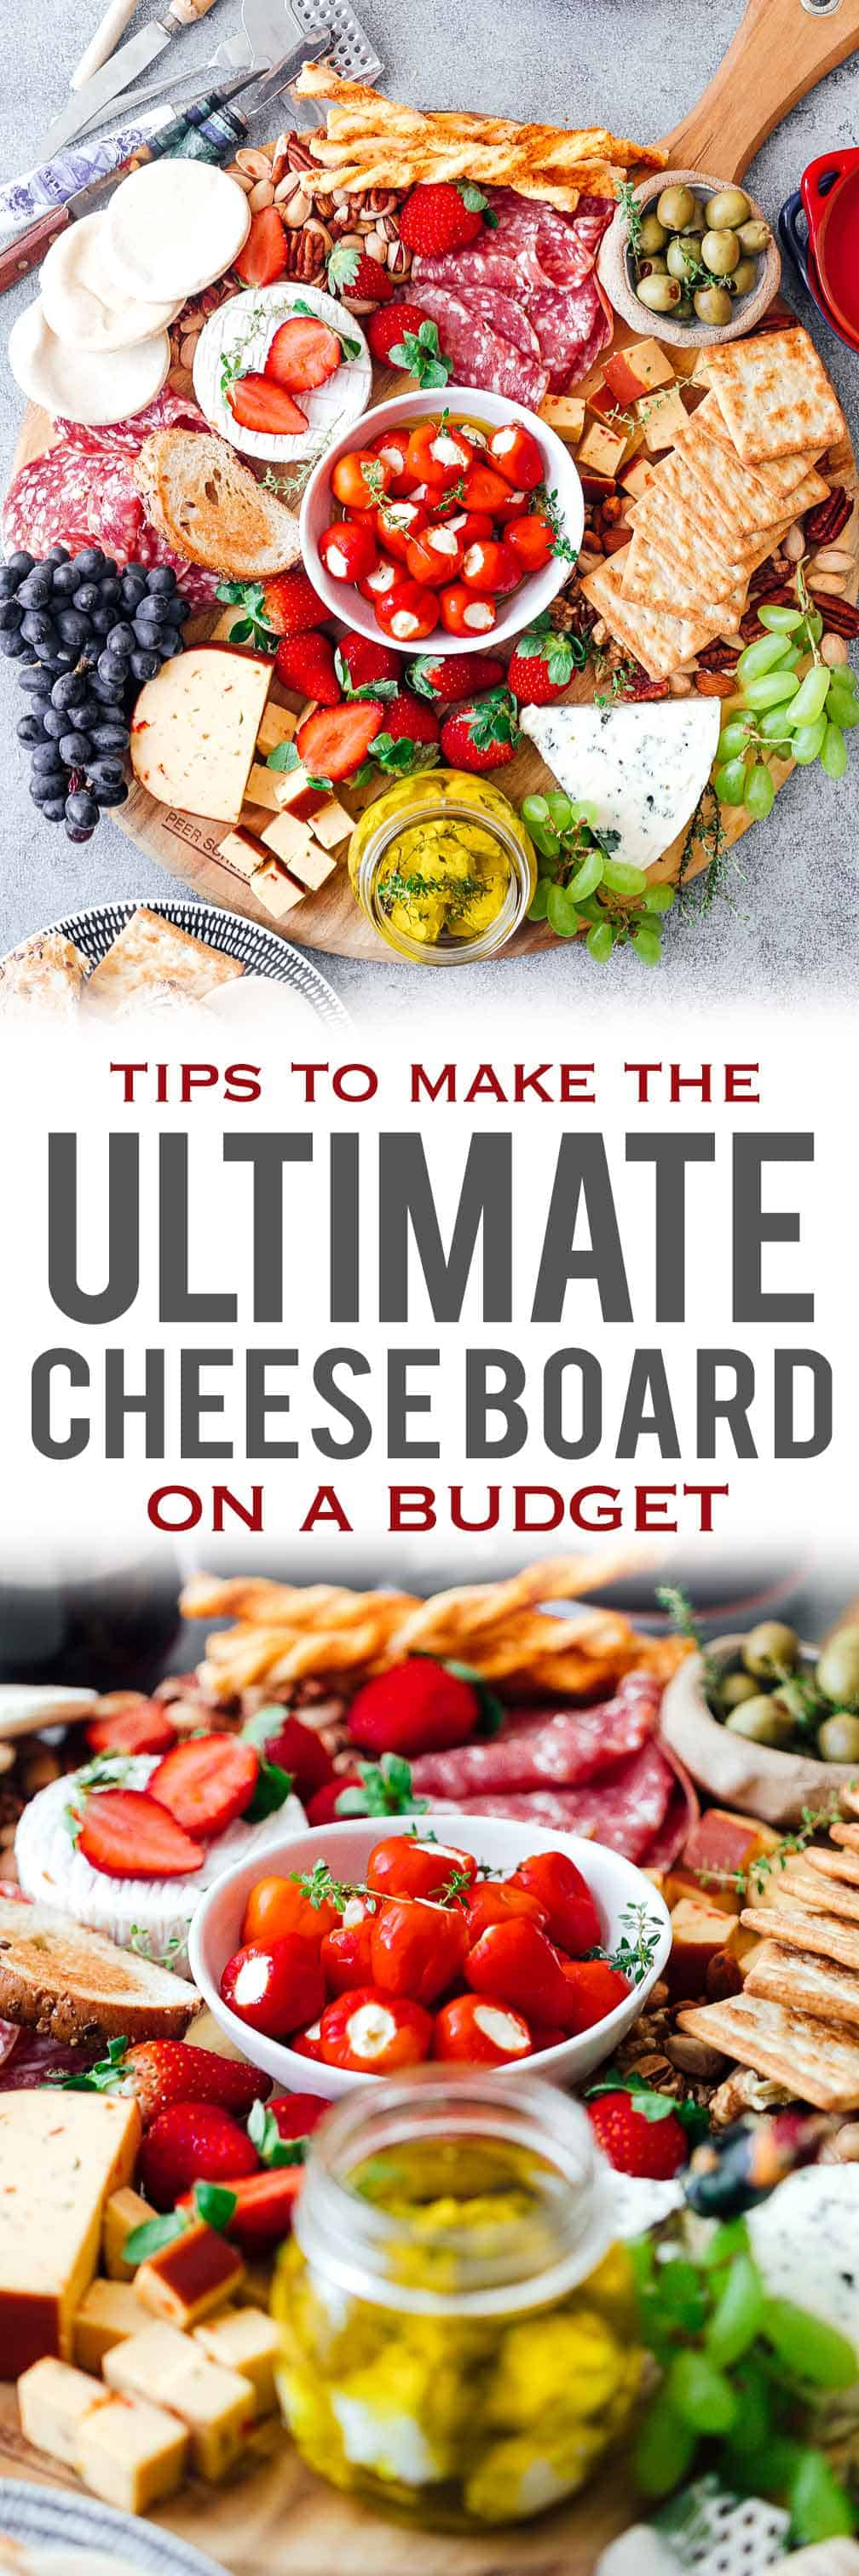 Christmas Cheese Board Ideas.How To Make The Ultimate Wine And Cheese Board On A Budget